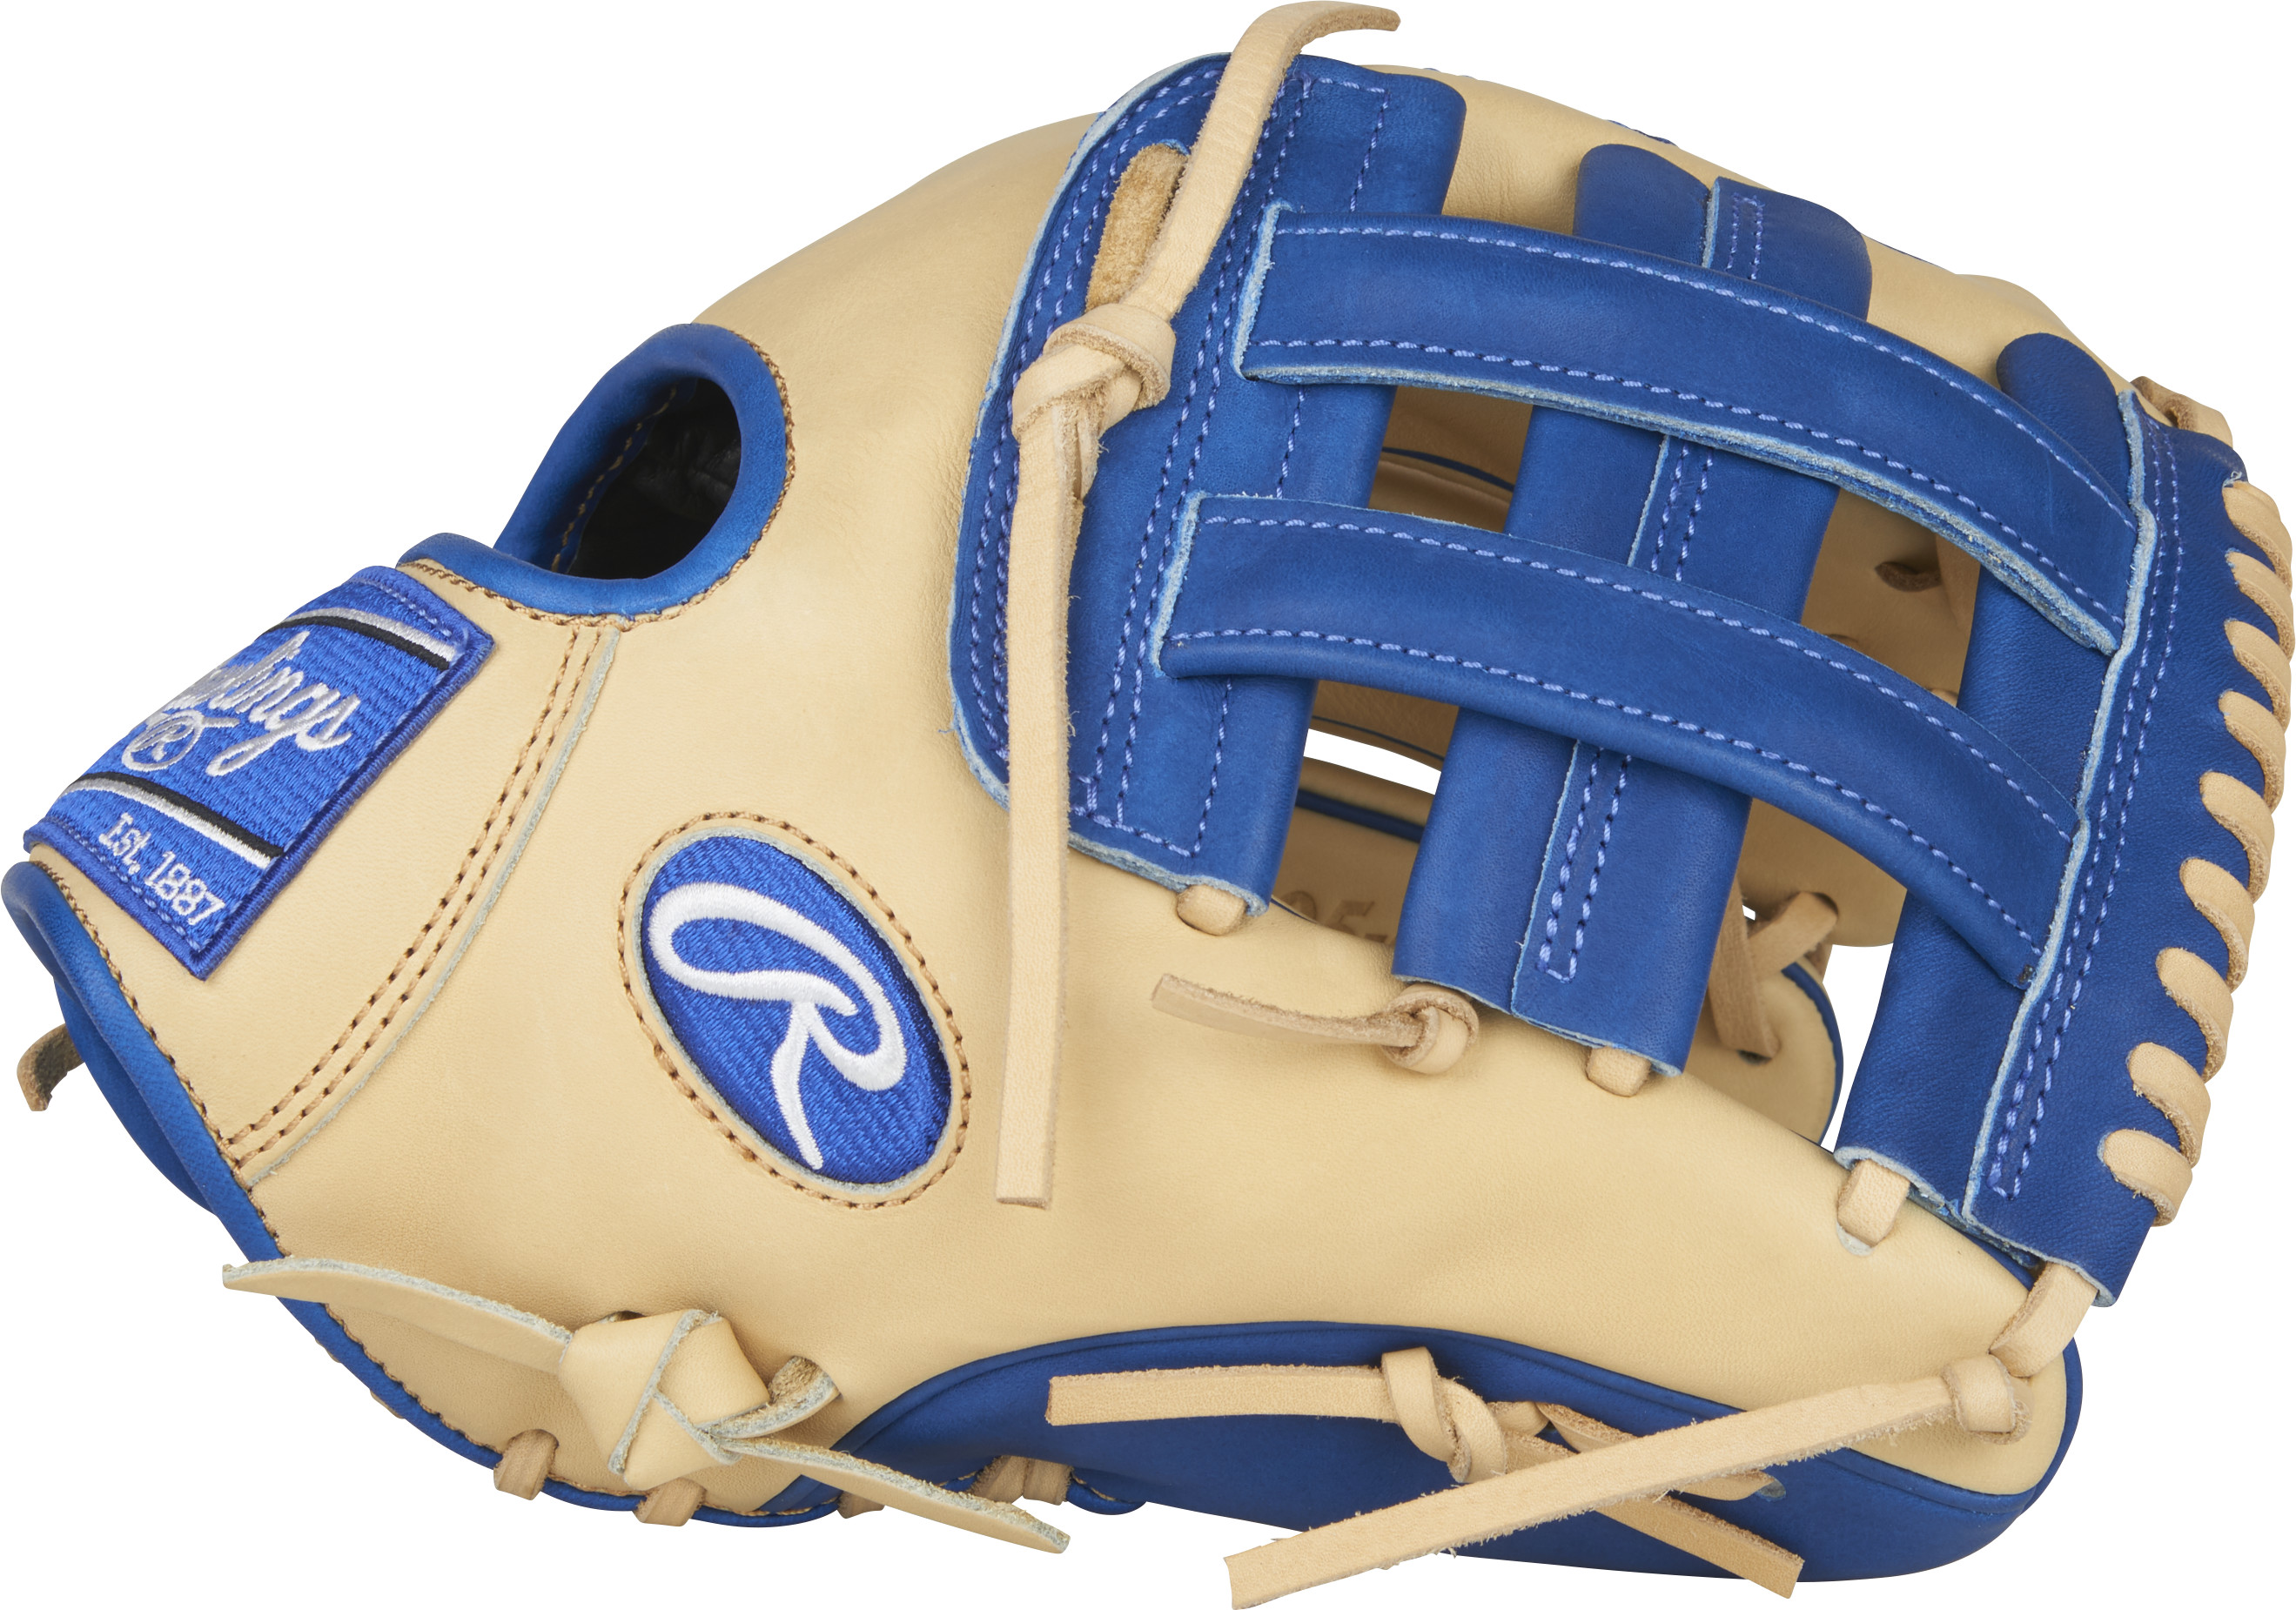 http://www.bestbatdeals.com/images/gloves/rawlings/PRO205-6CCR-3.jpg